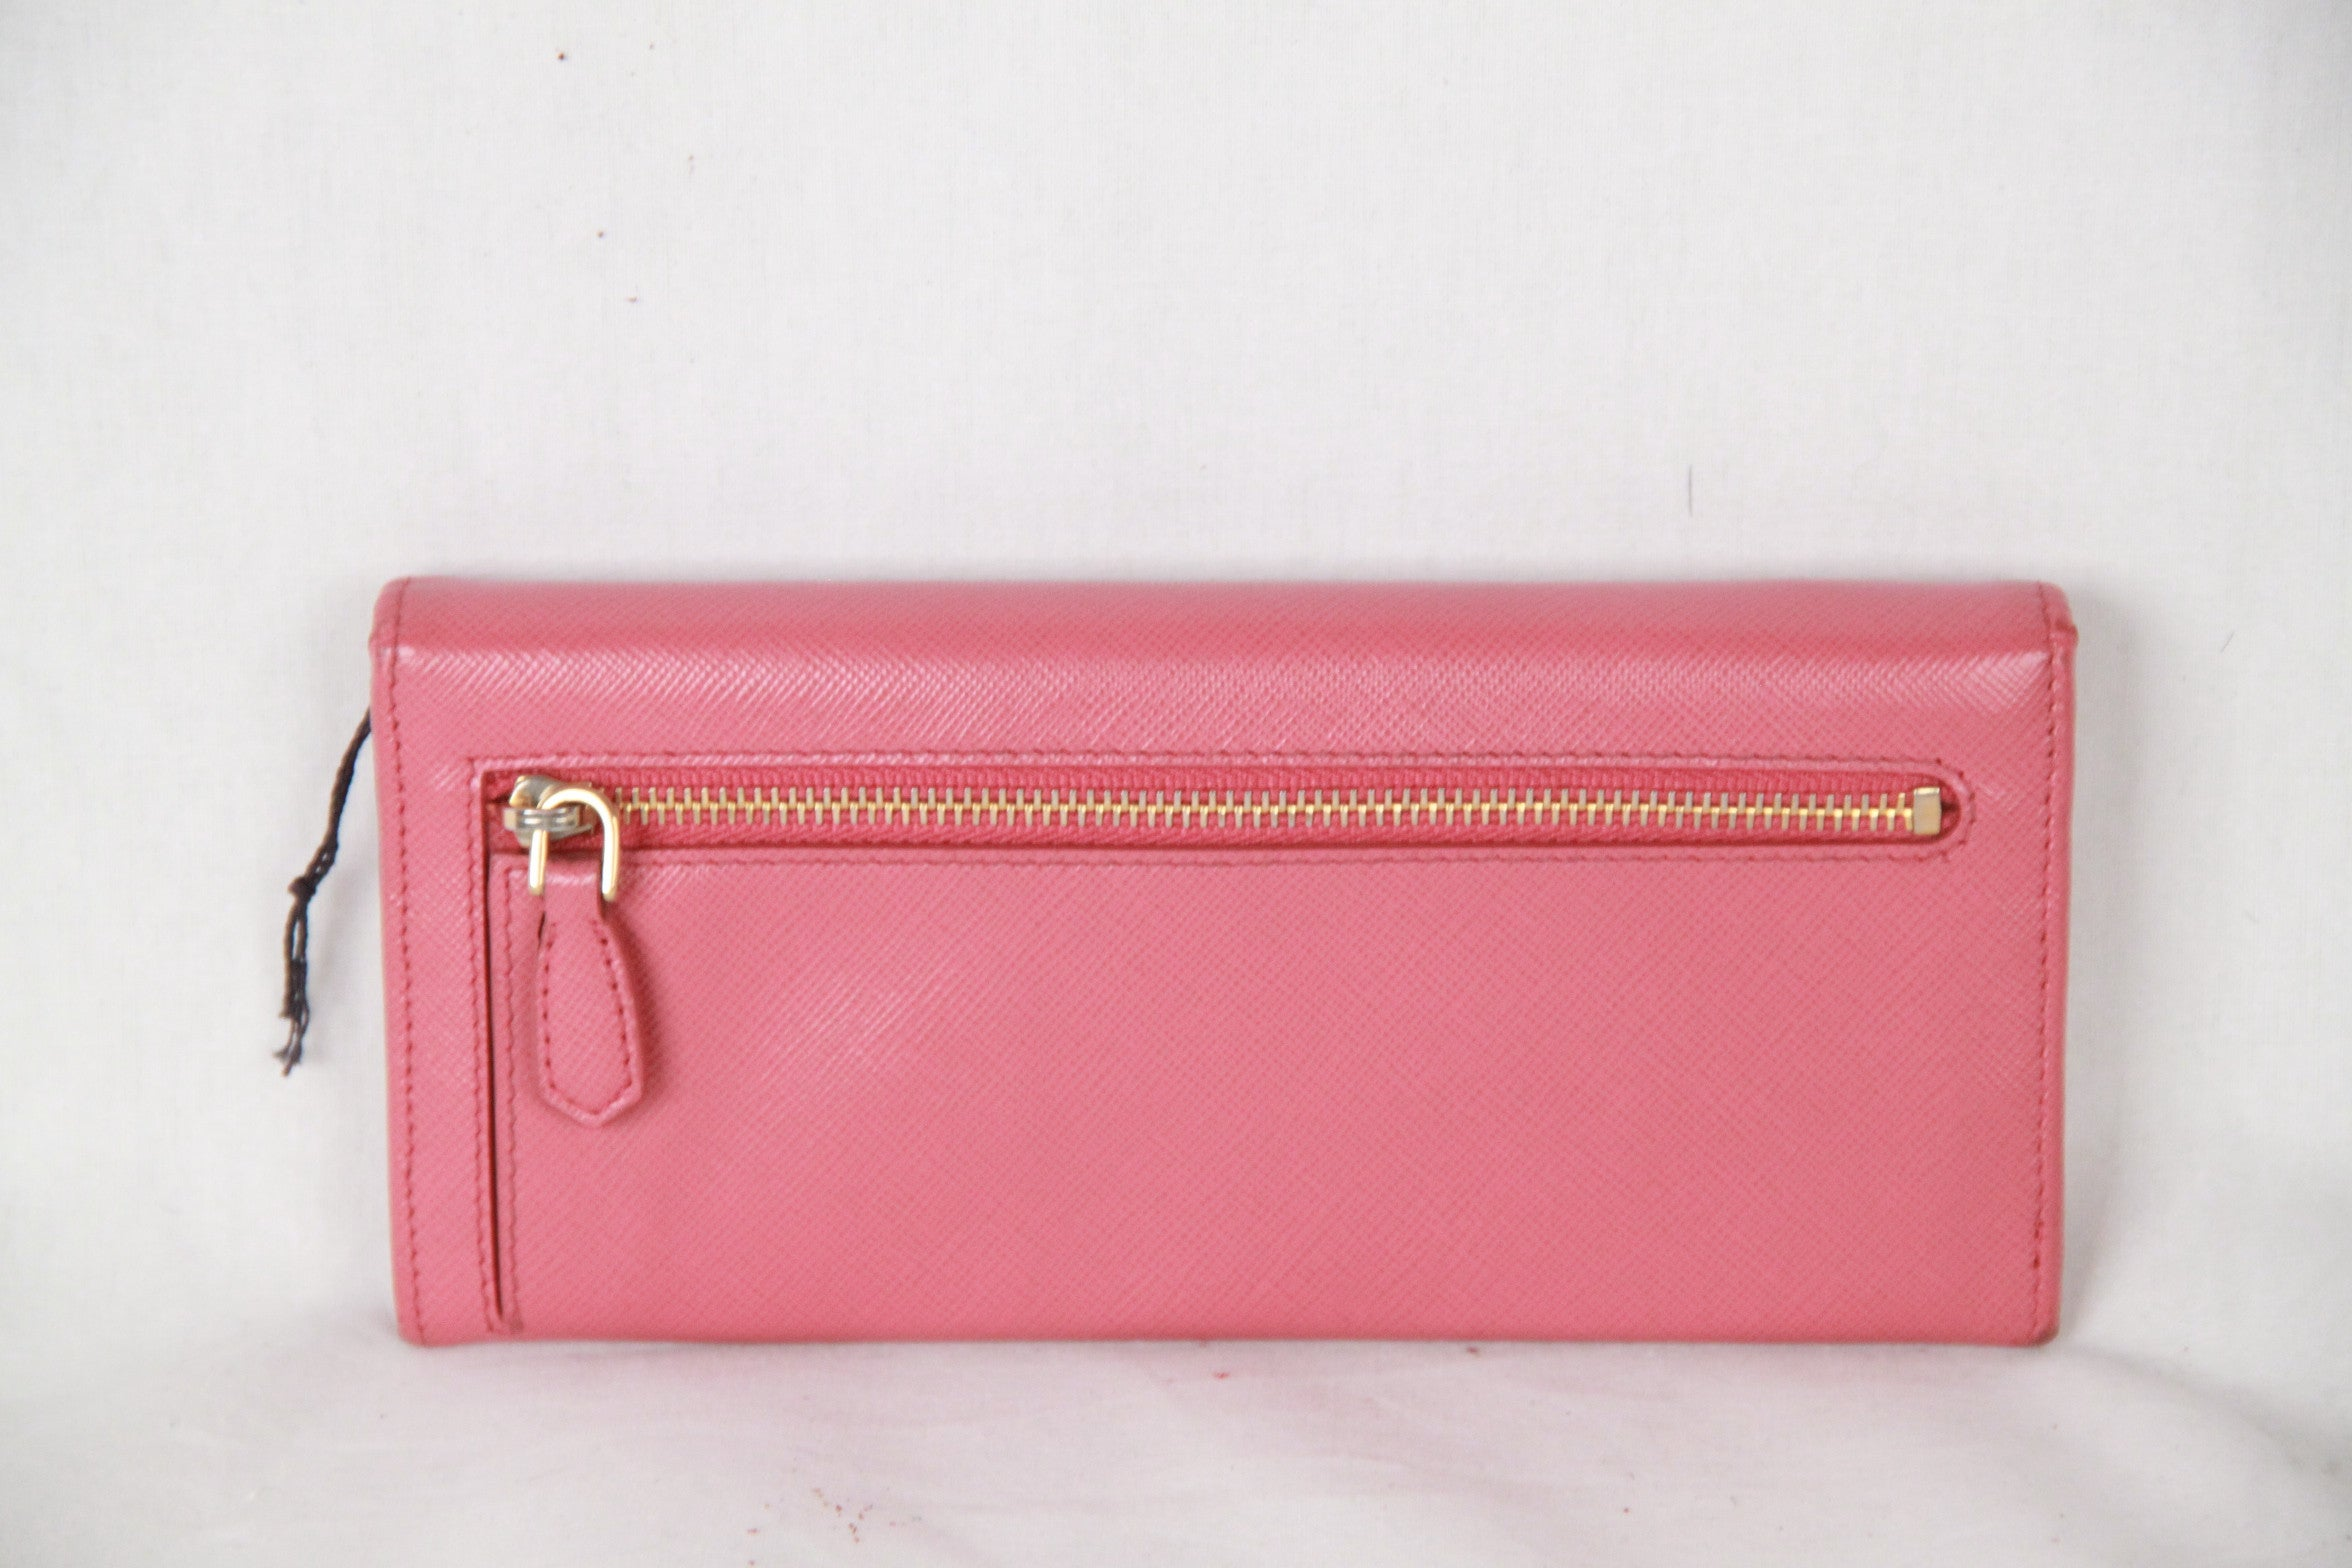 0c67cf6382df PRADA_Pink_SAFFIANO_Leather_FLAP_CONTINENTAL_WALLET_1M1132_4__org.JPG